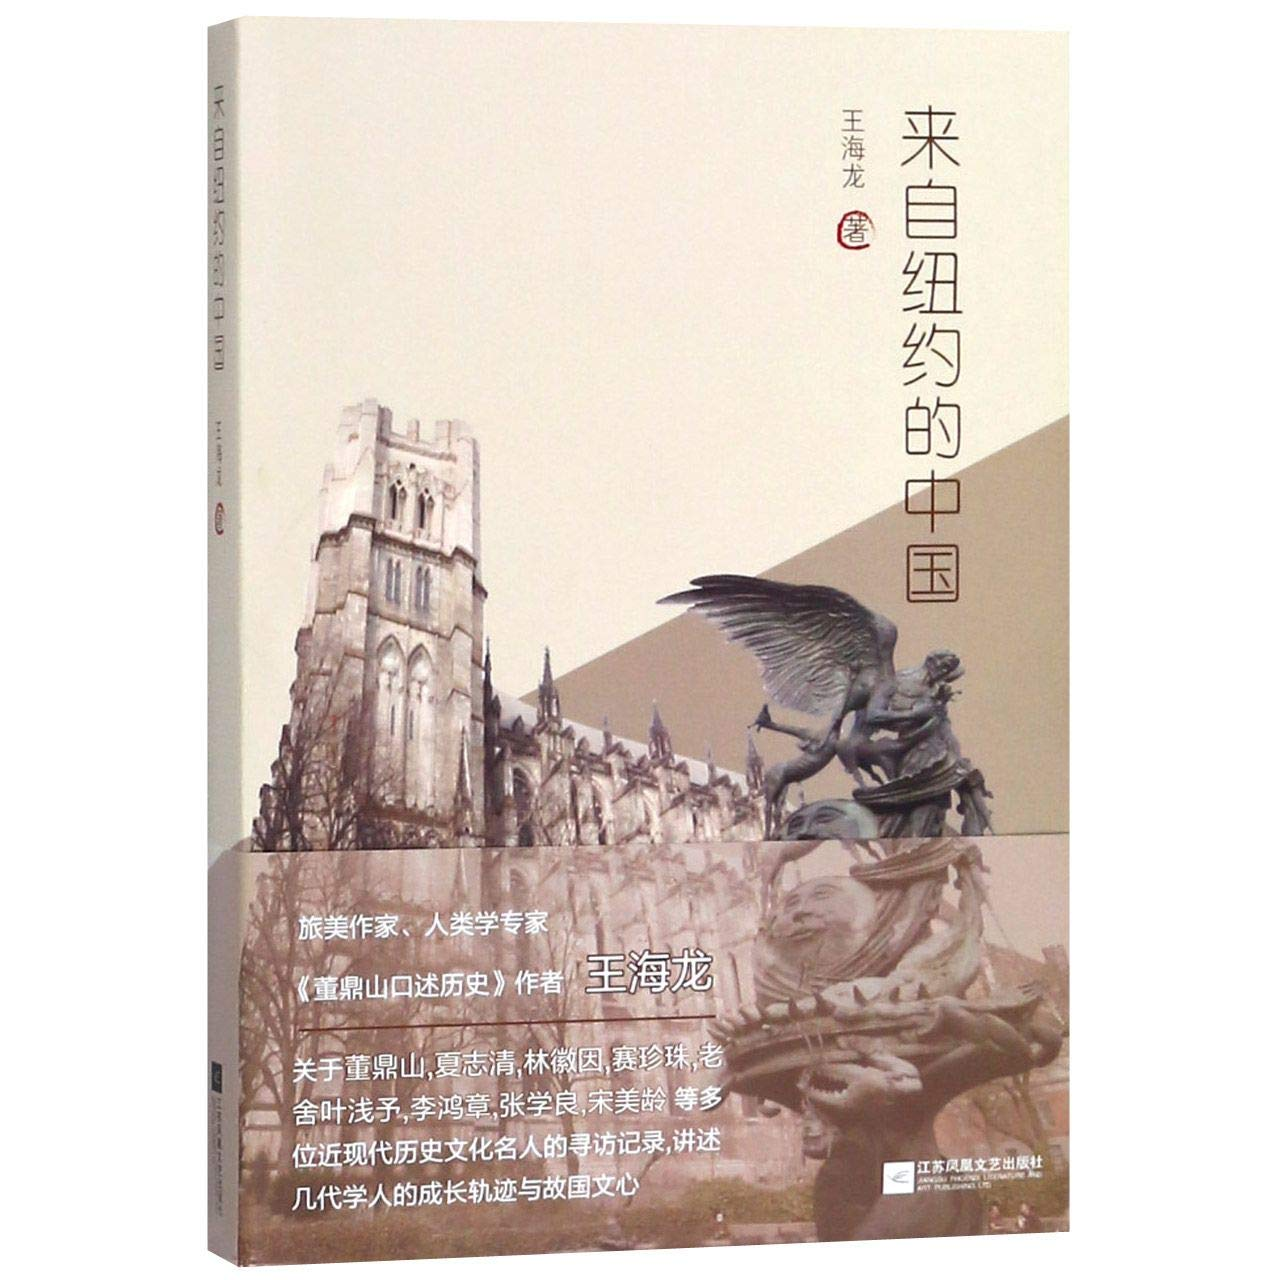 A China from New York (Chinese Edition) PDF